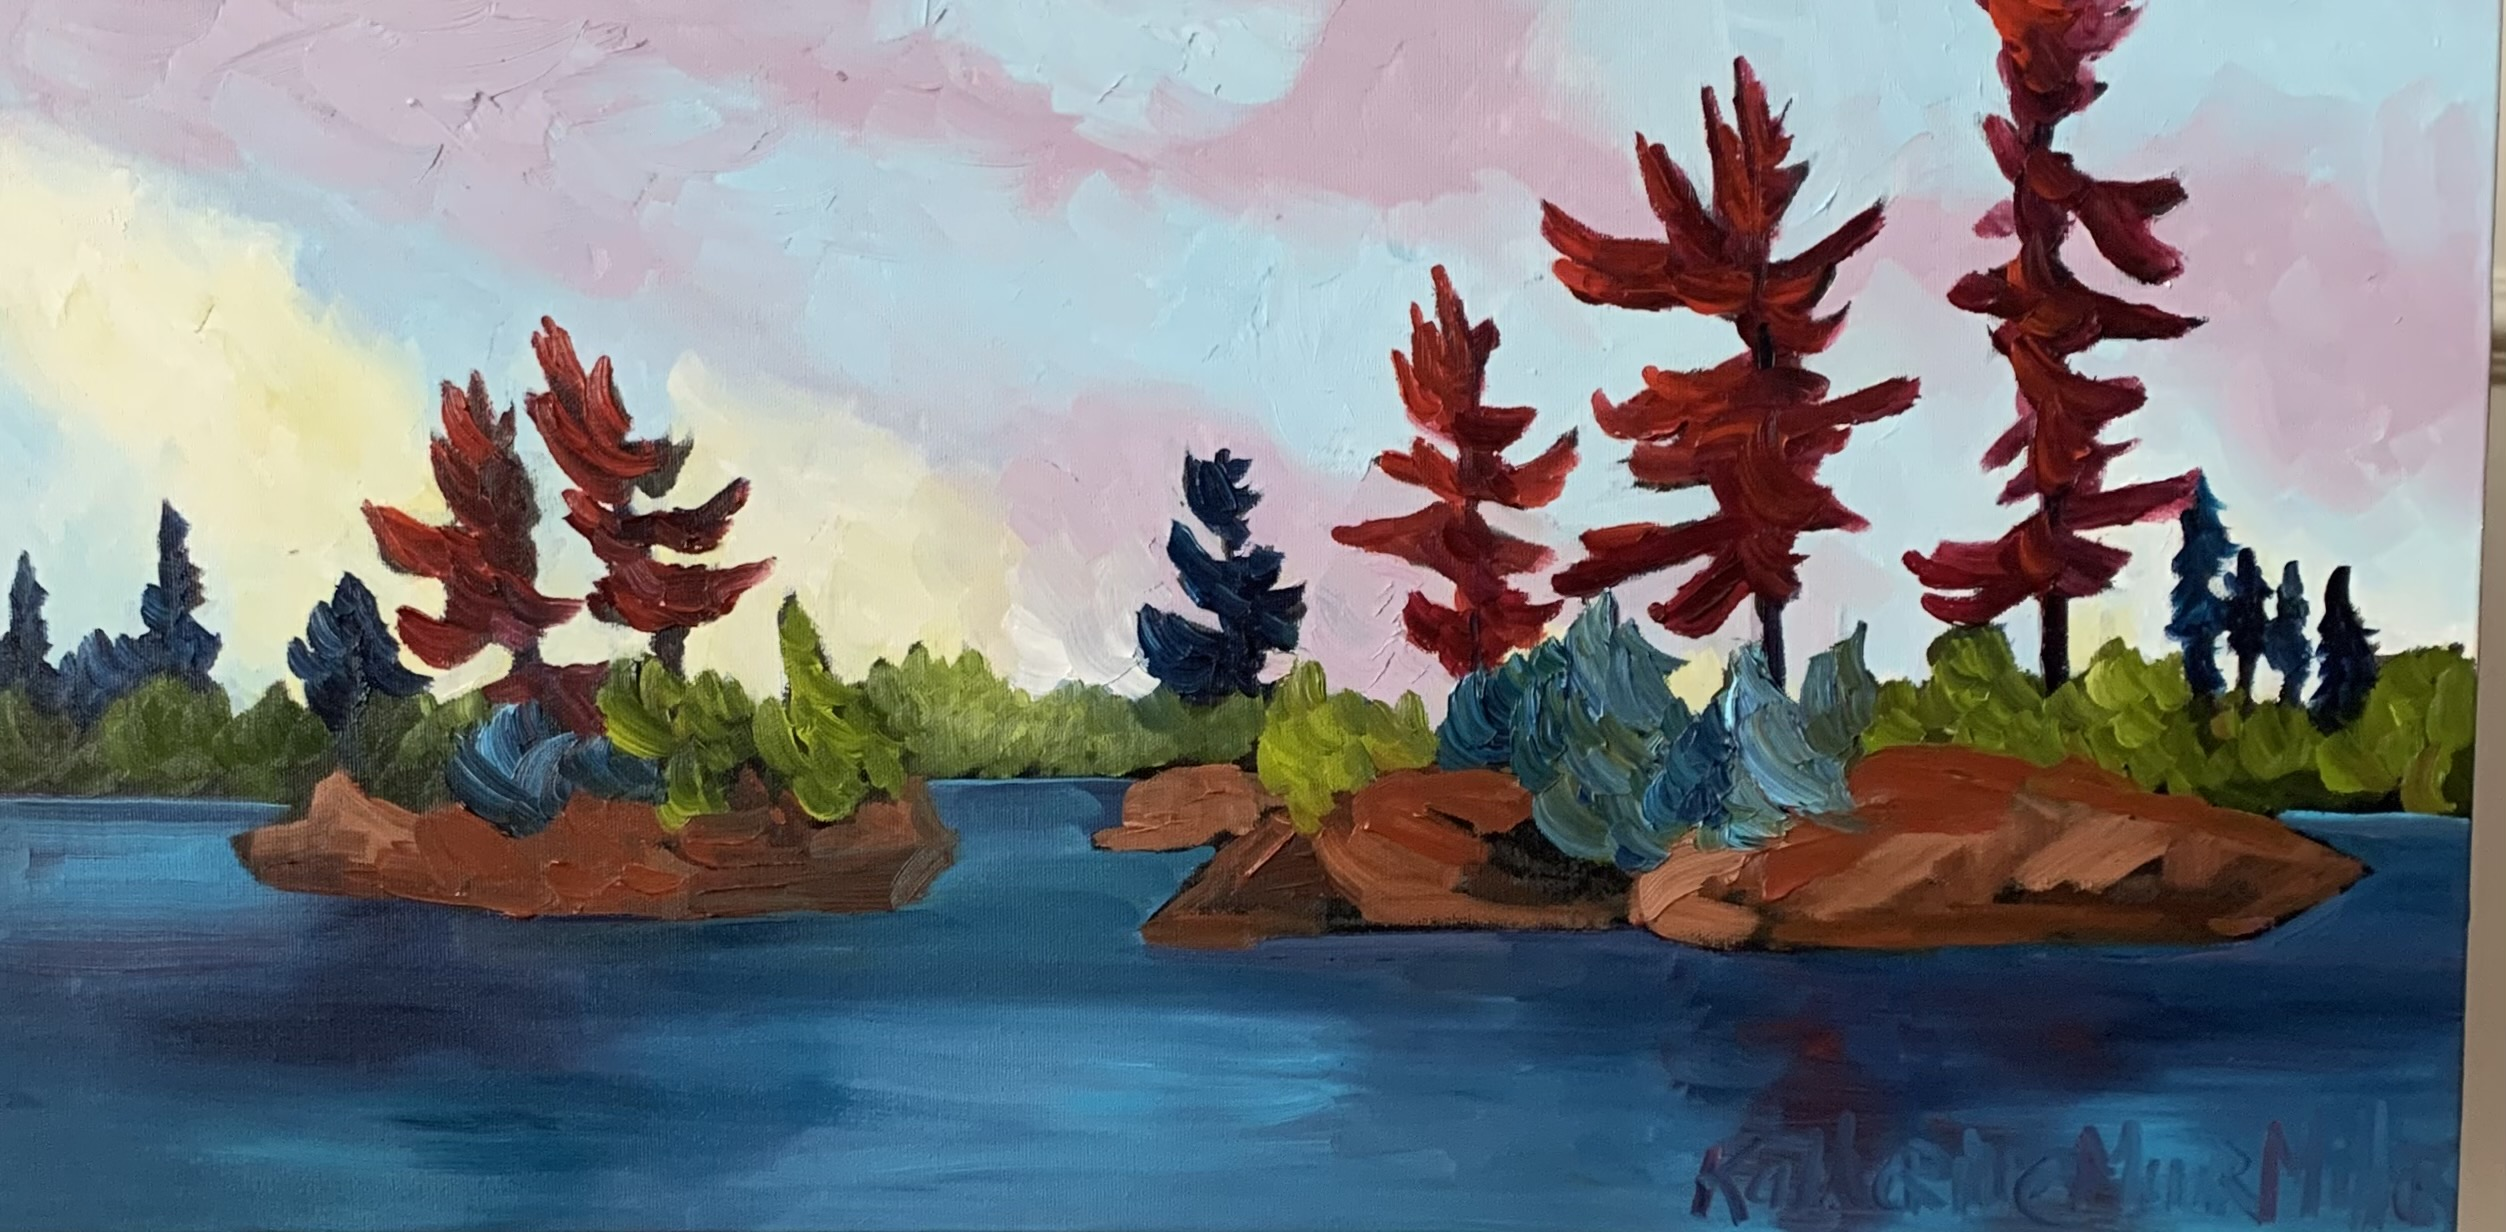 Islands of Temagami